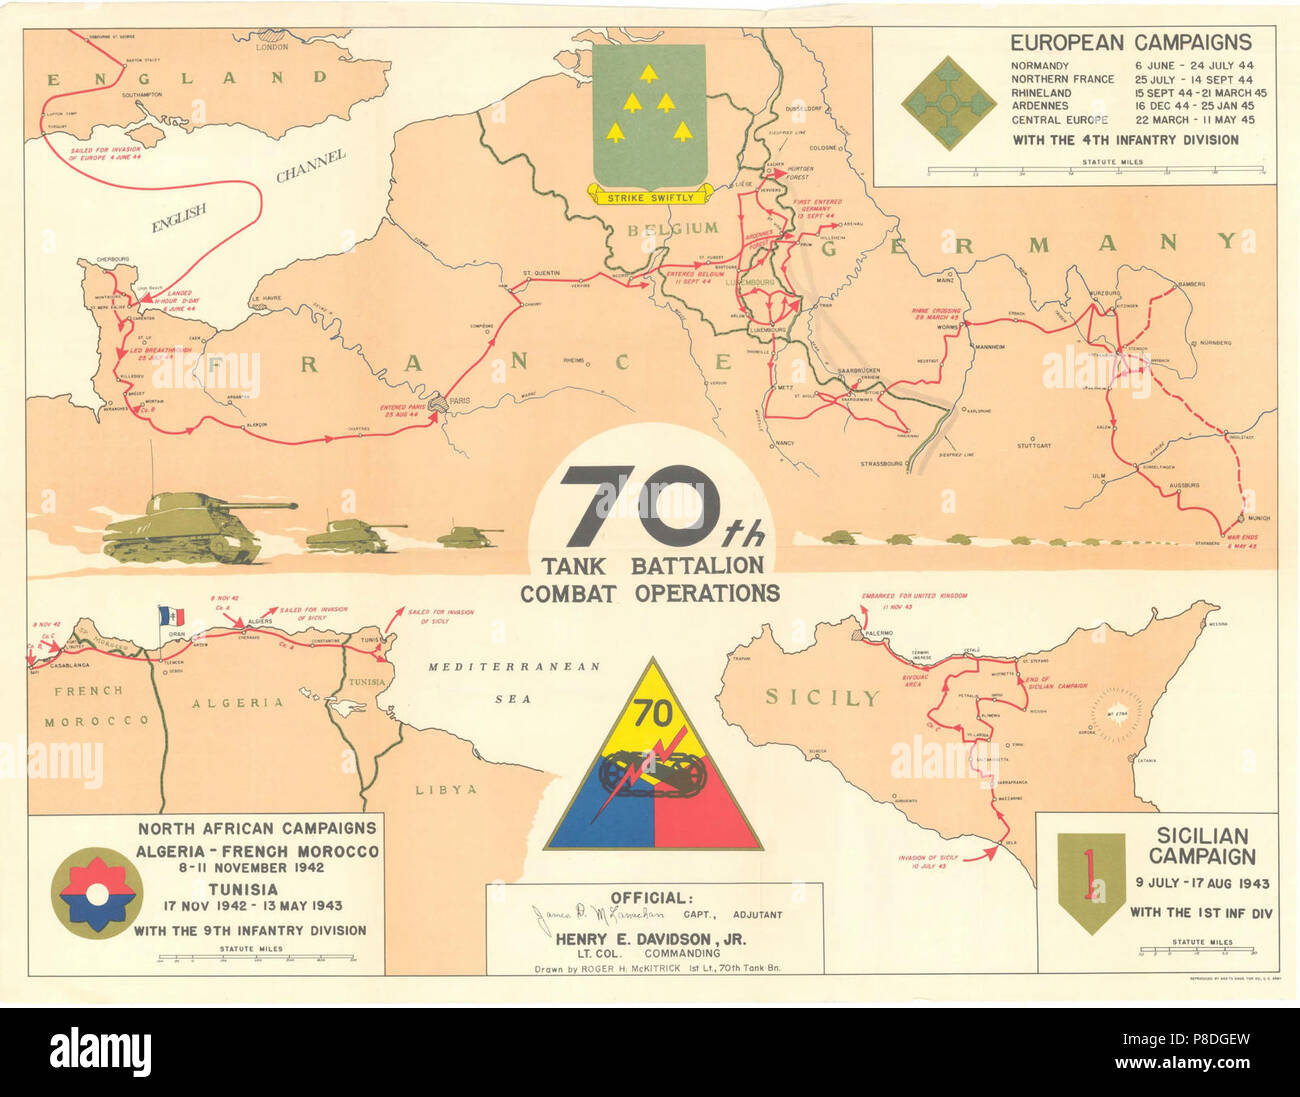 70th Tank Battalion Combat Operations Campaign Map For North Africa